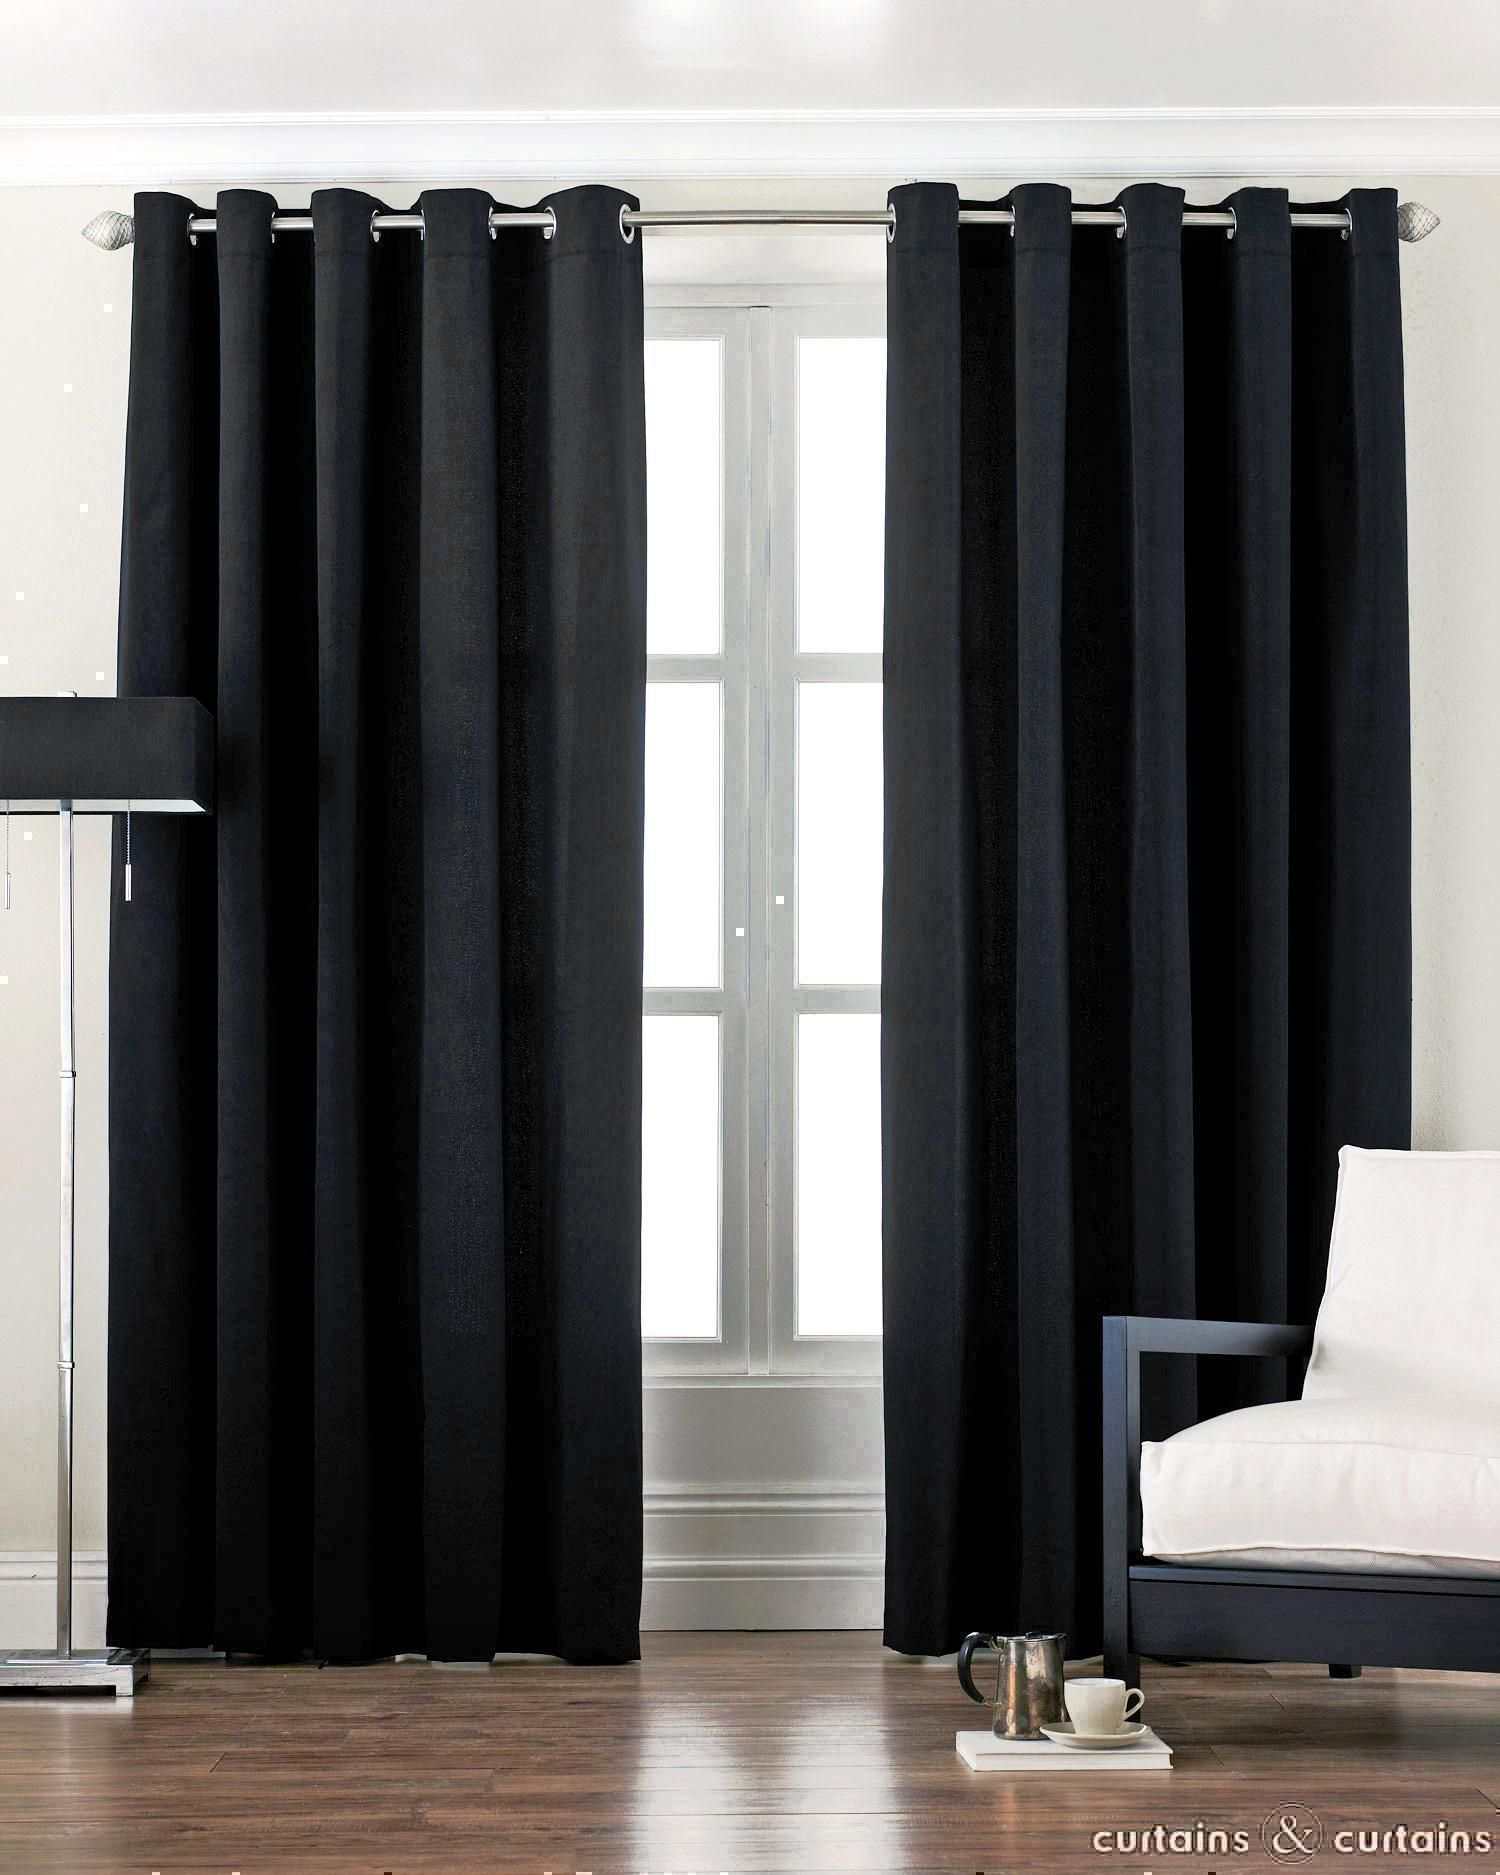 Black Curtains Black Cotton Canvas Eyelet Lined Curtain